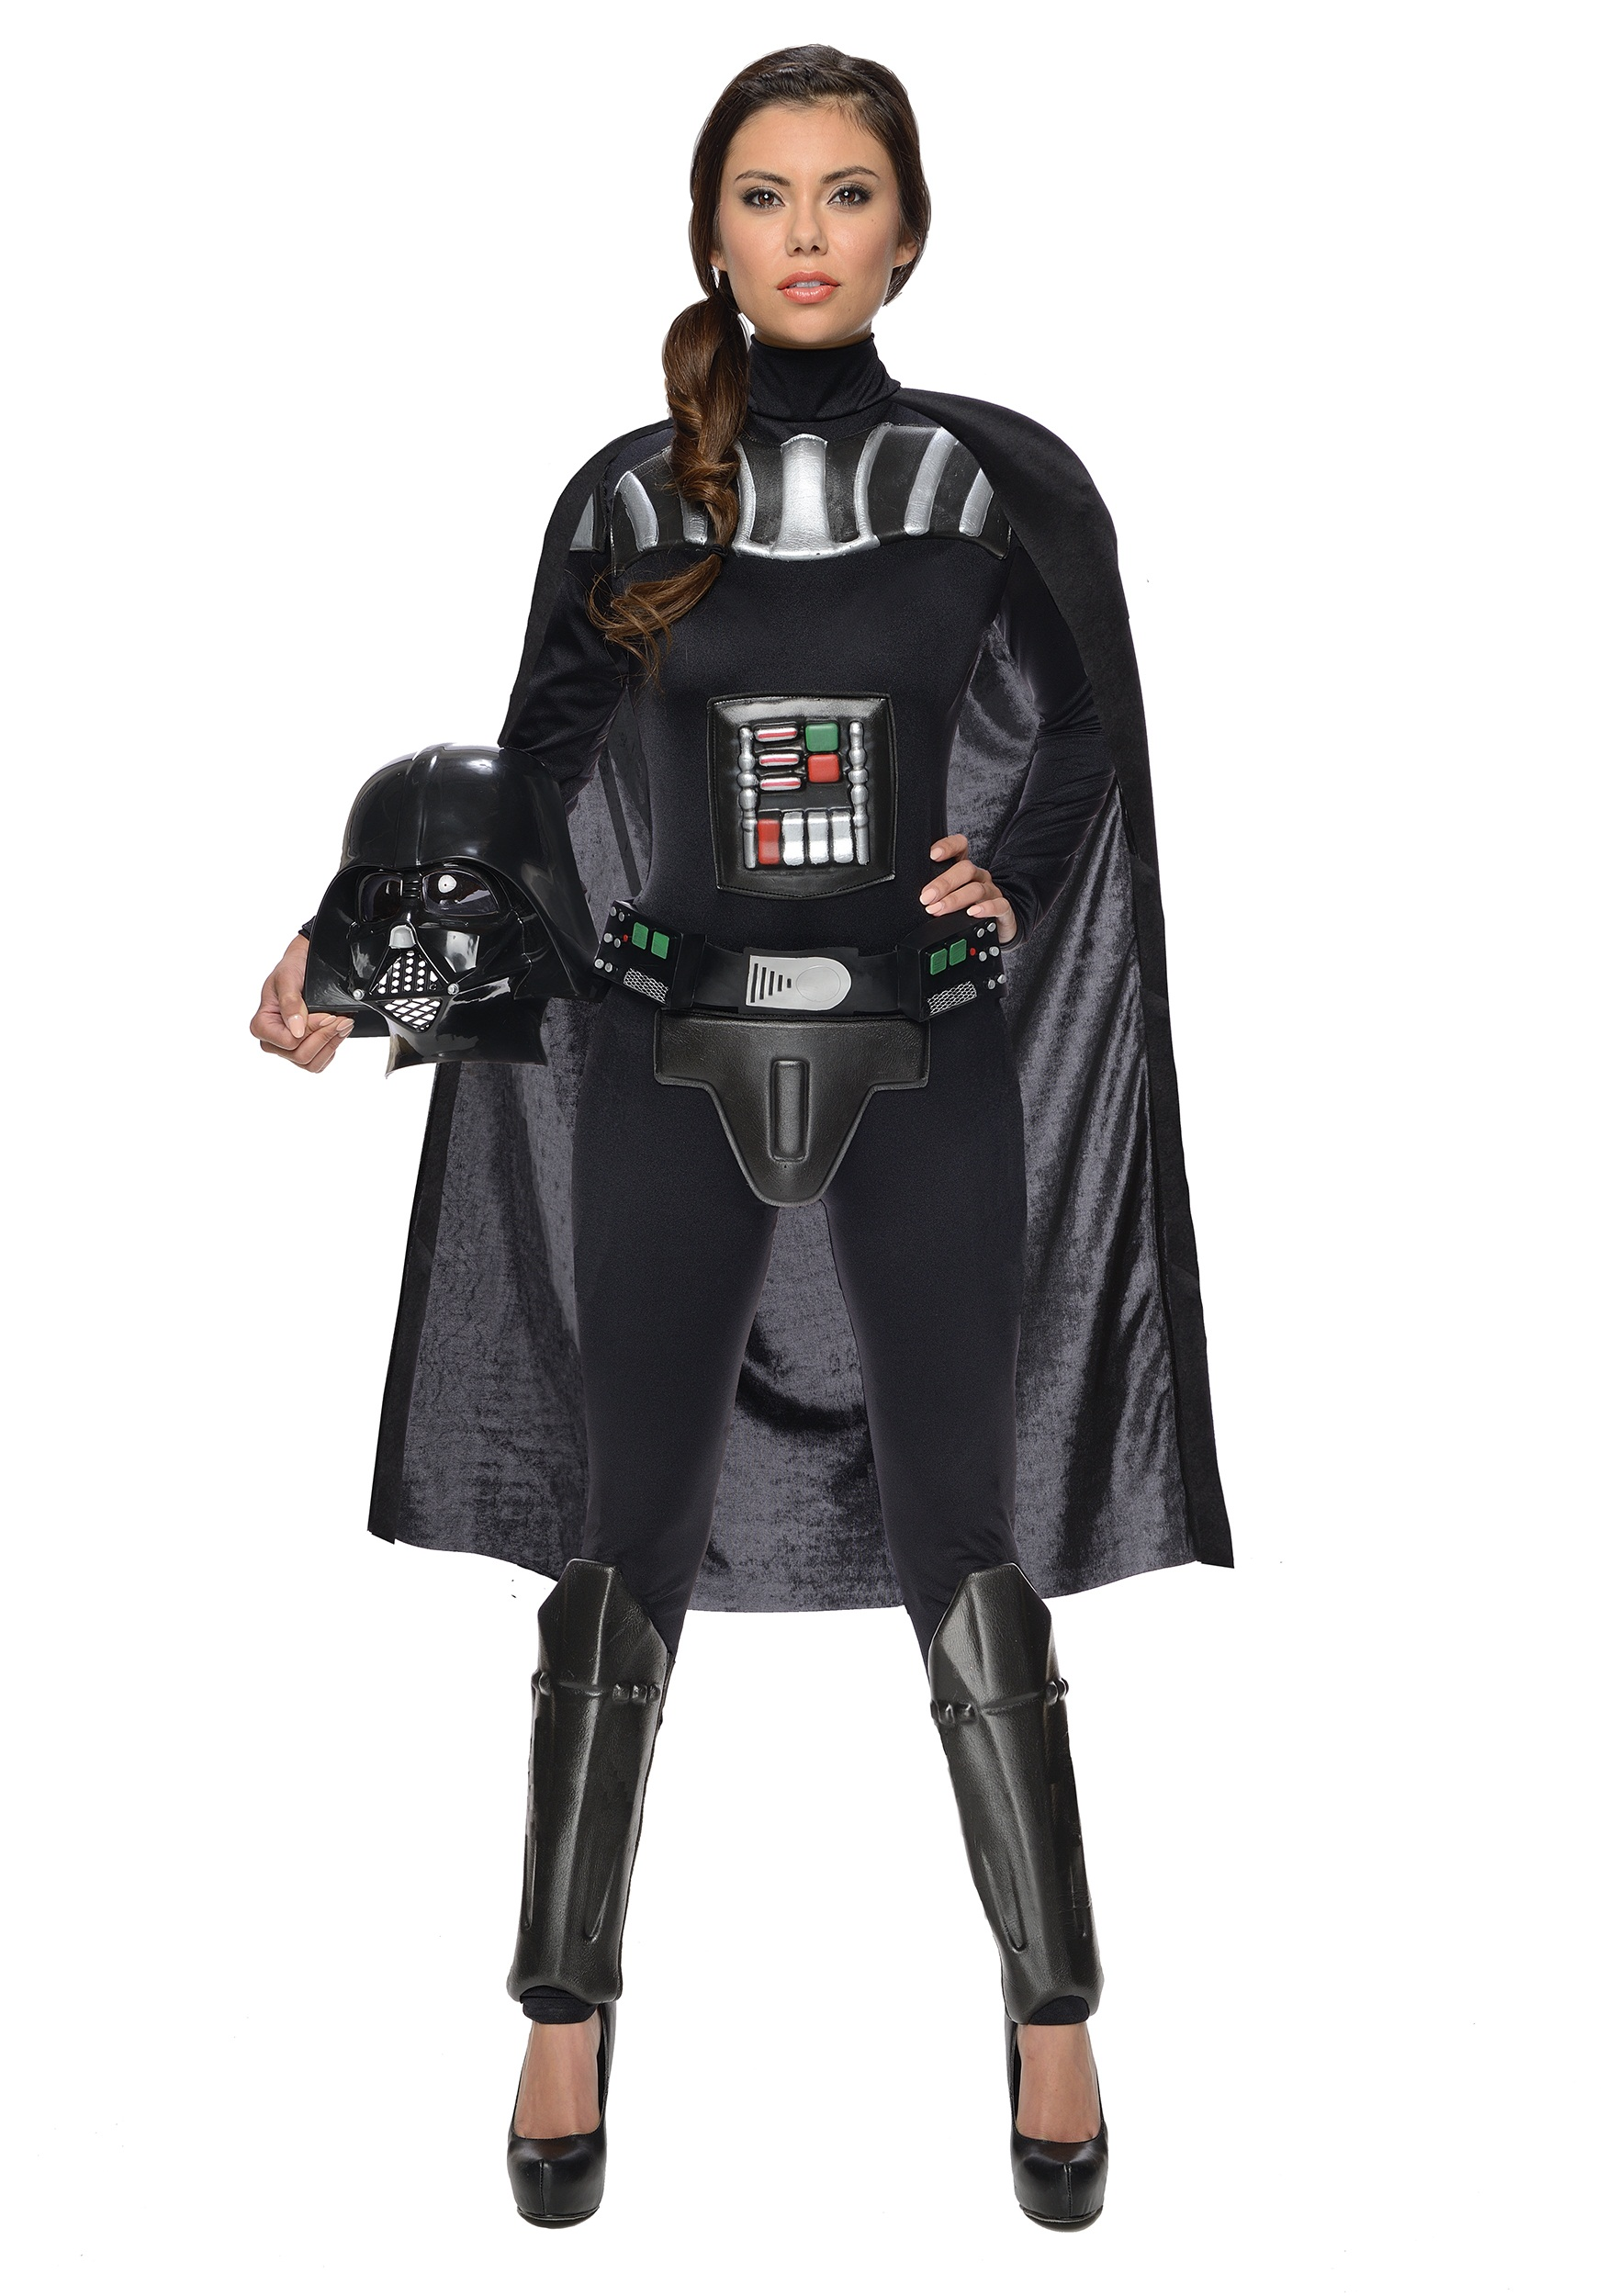 star wars female darth vader bodysuit - Halloween Darth Vader